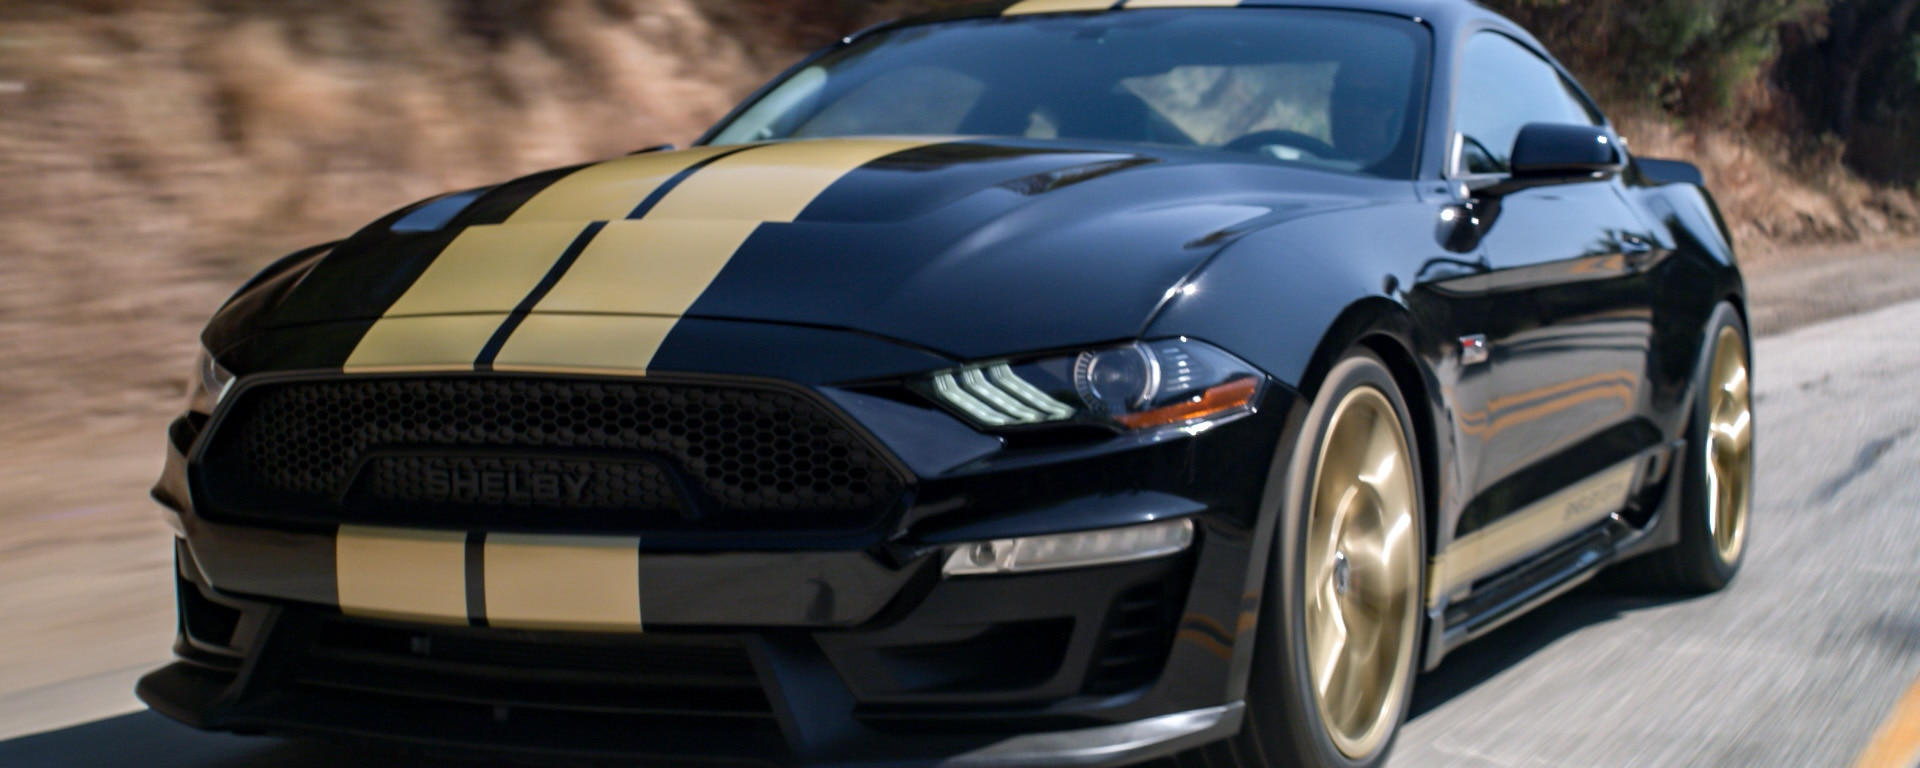 2019 Shelby GT Ford Mustang Makes as Much as 700+ HP ...